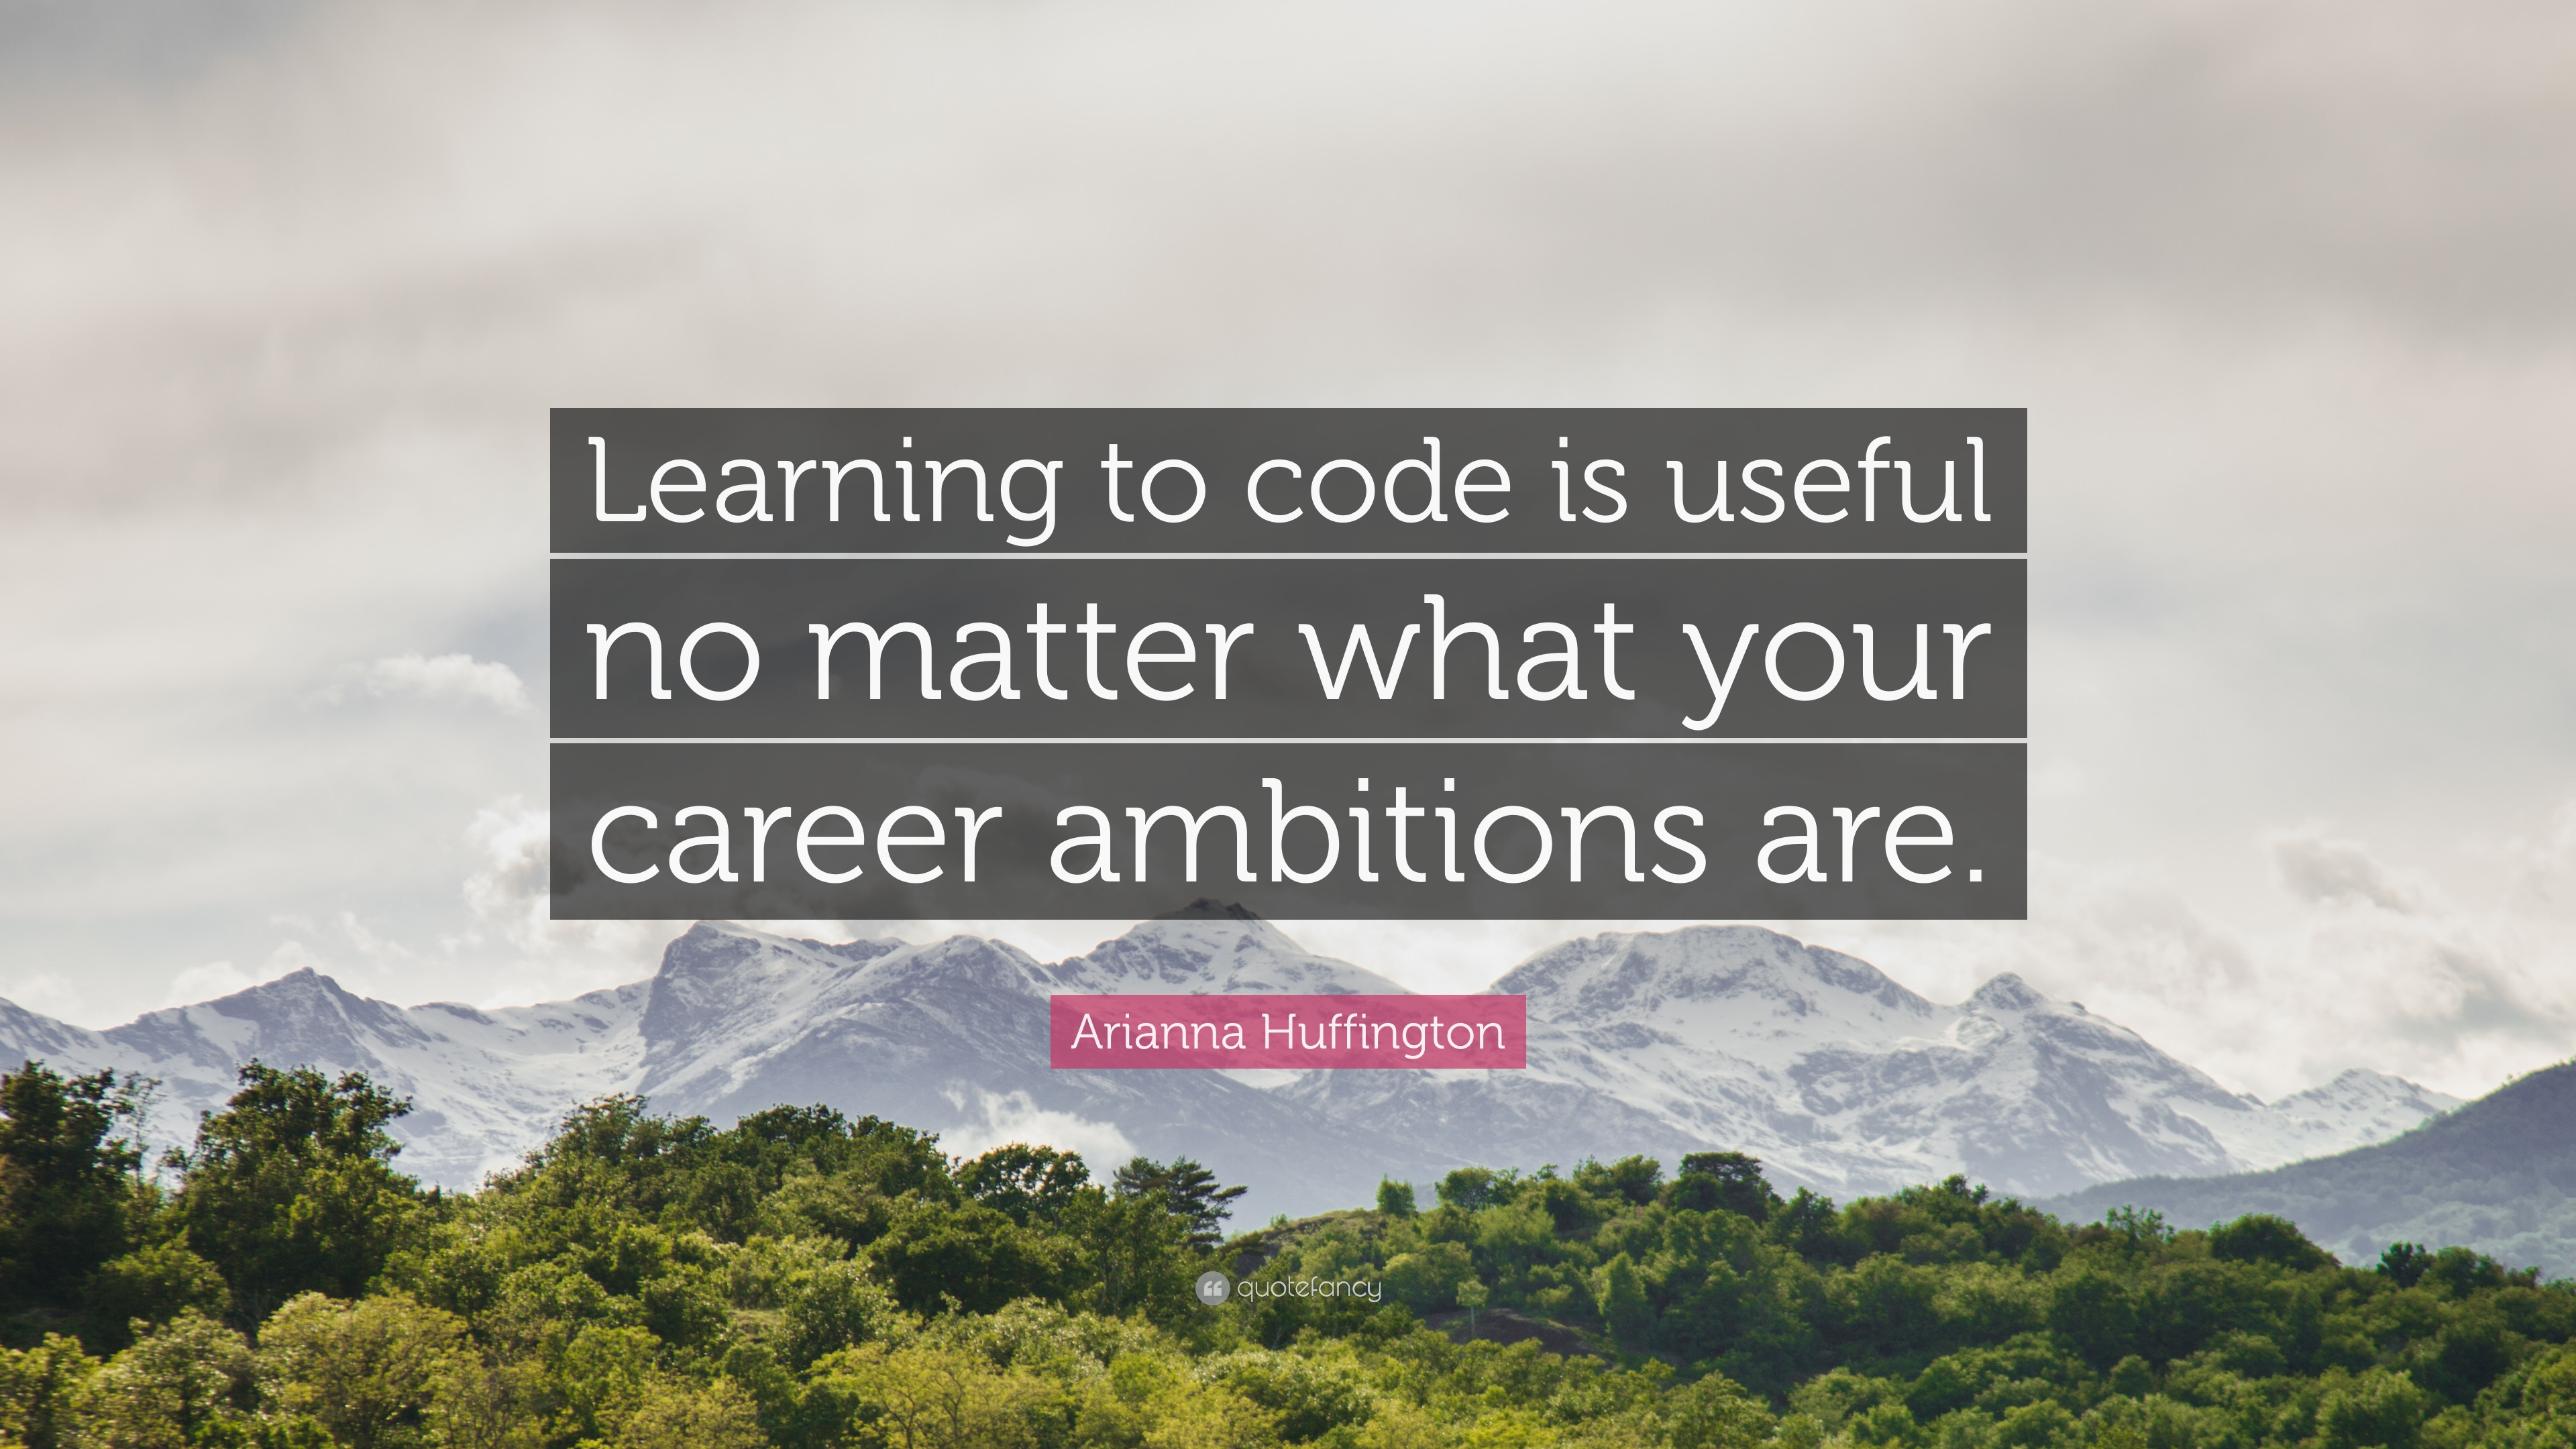 ambition quotes quotefancy ambition quotes learning to code is useful no matter what your career ambitions are